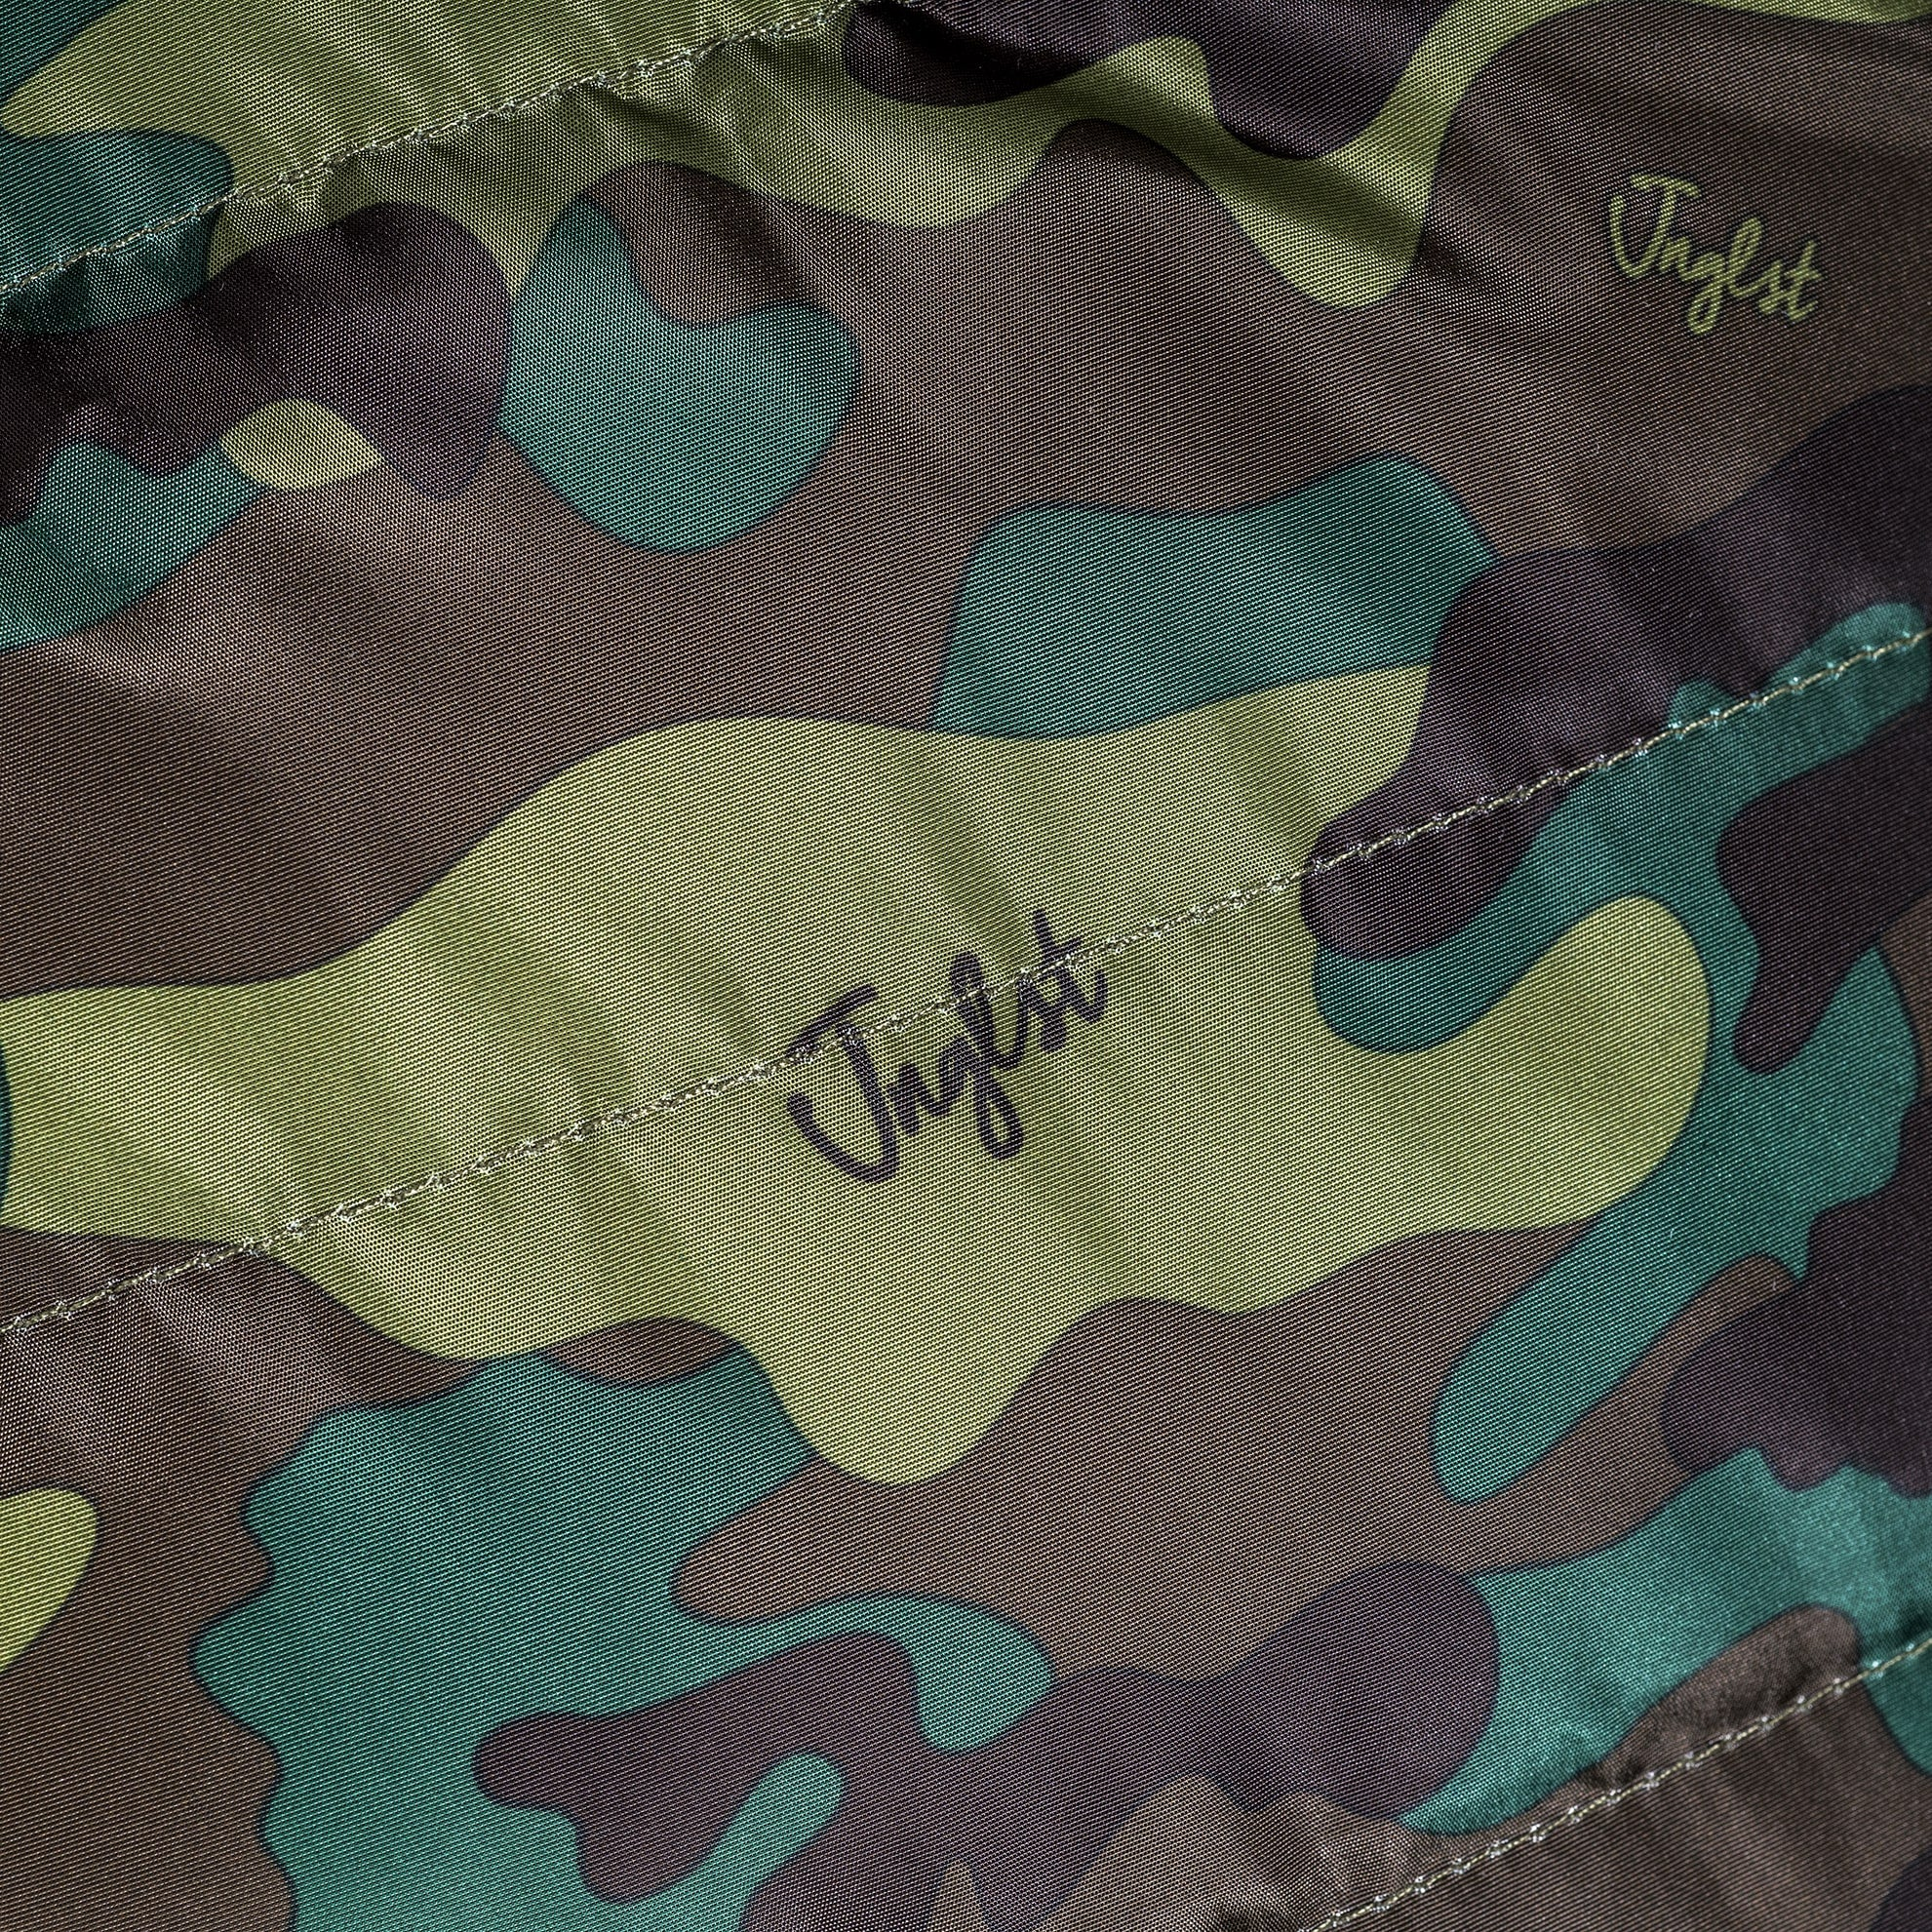 Waterproof Fabric on our Camo Body Warmer